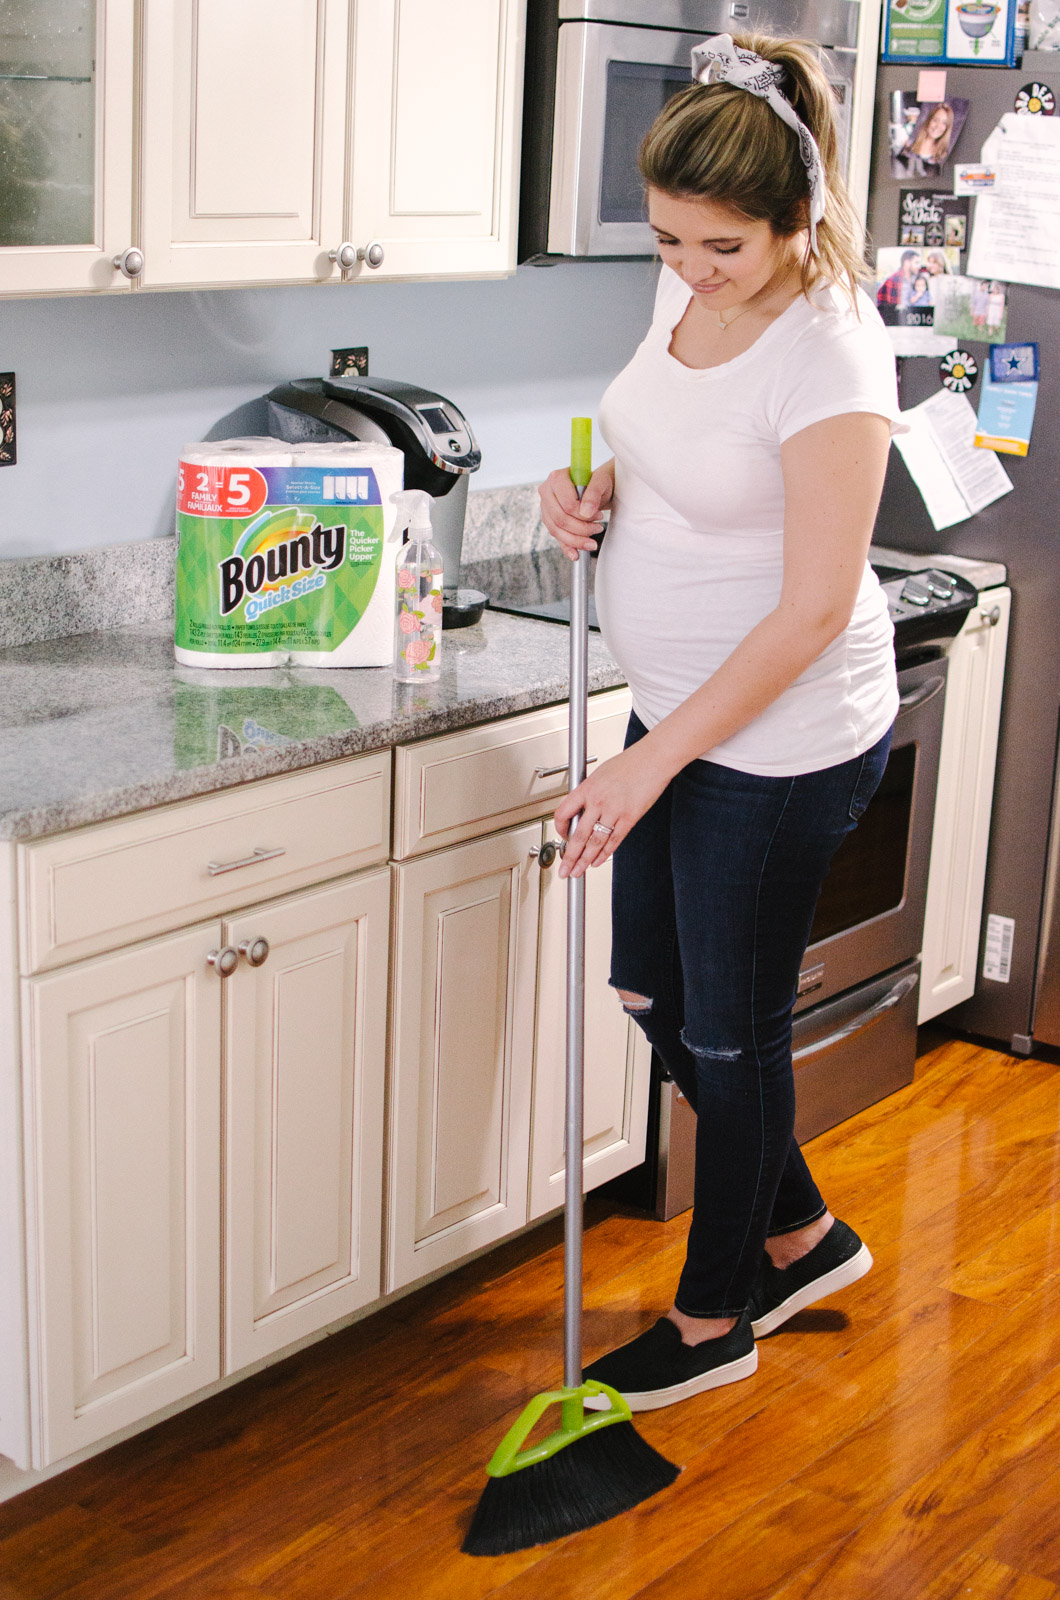 spring cleaning - weekly home cleaning schedule: what rooms to clean each day to always have a clean home! bylaurenm.com